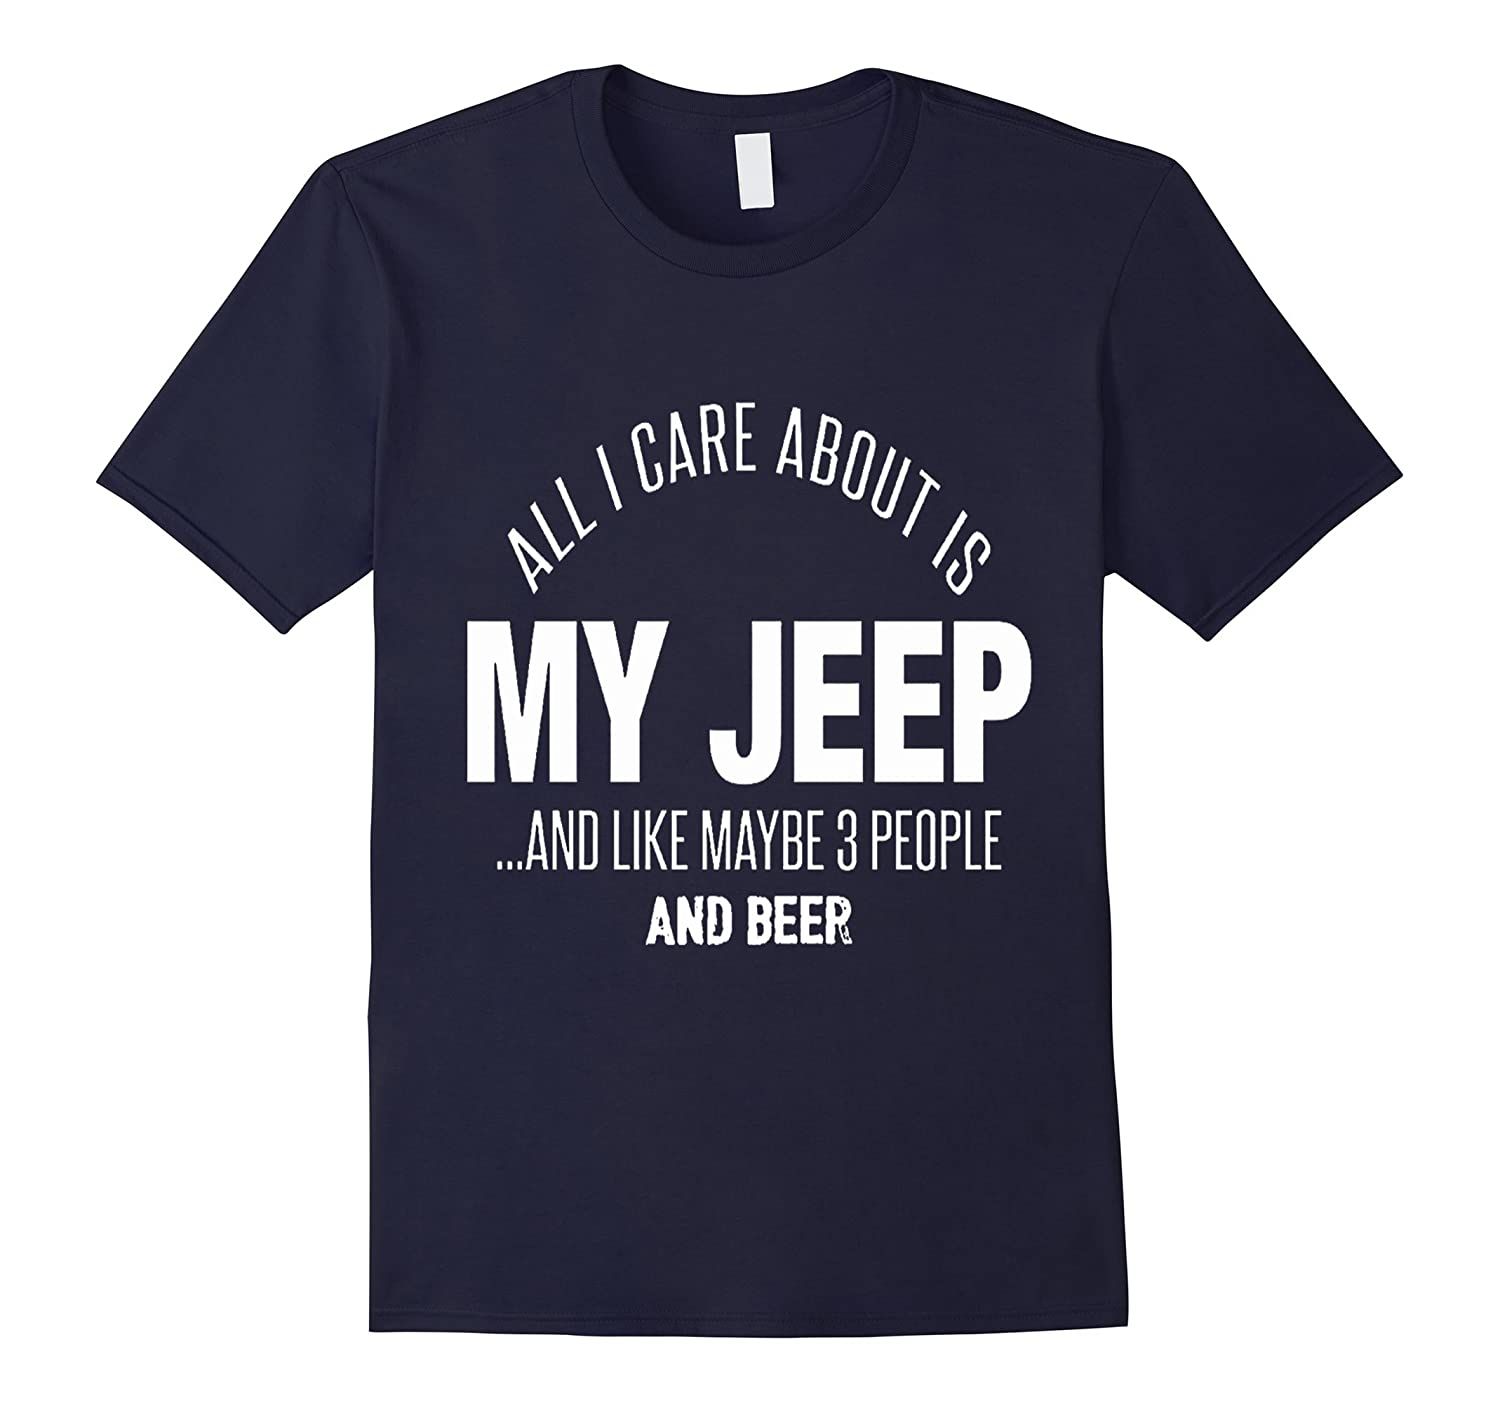 All I care about is my jeep and like maybe 3 people and beer-TH